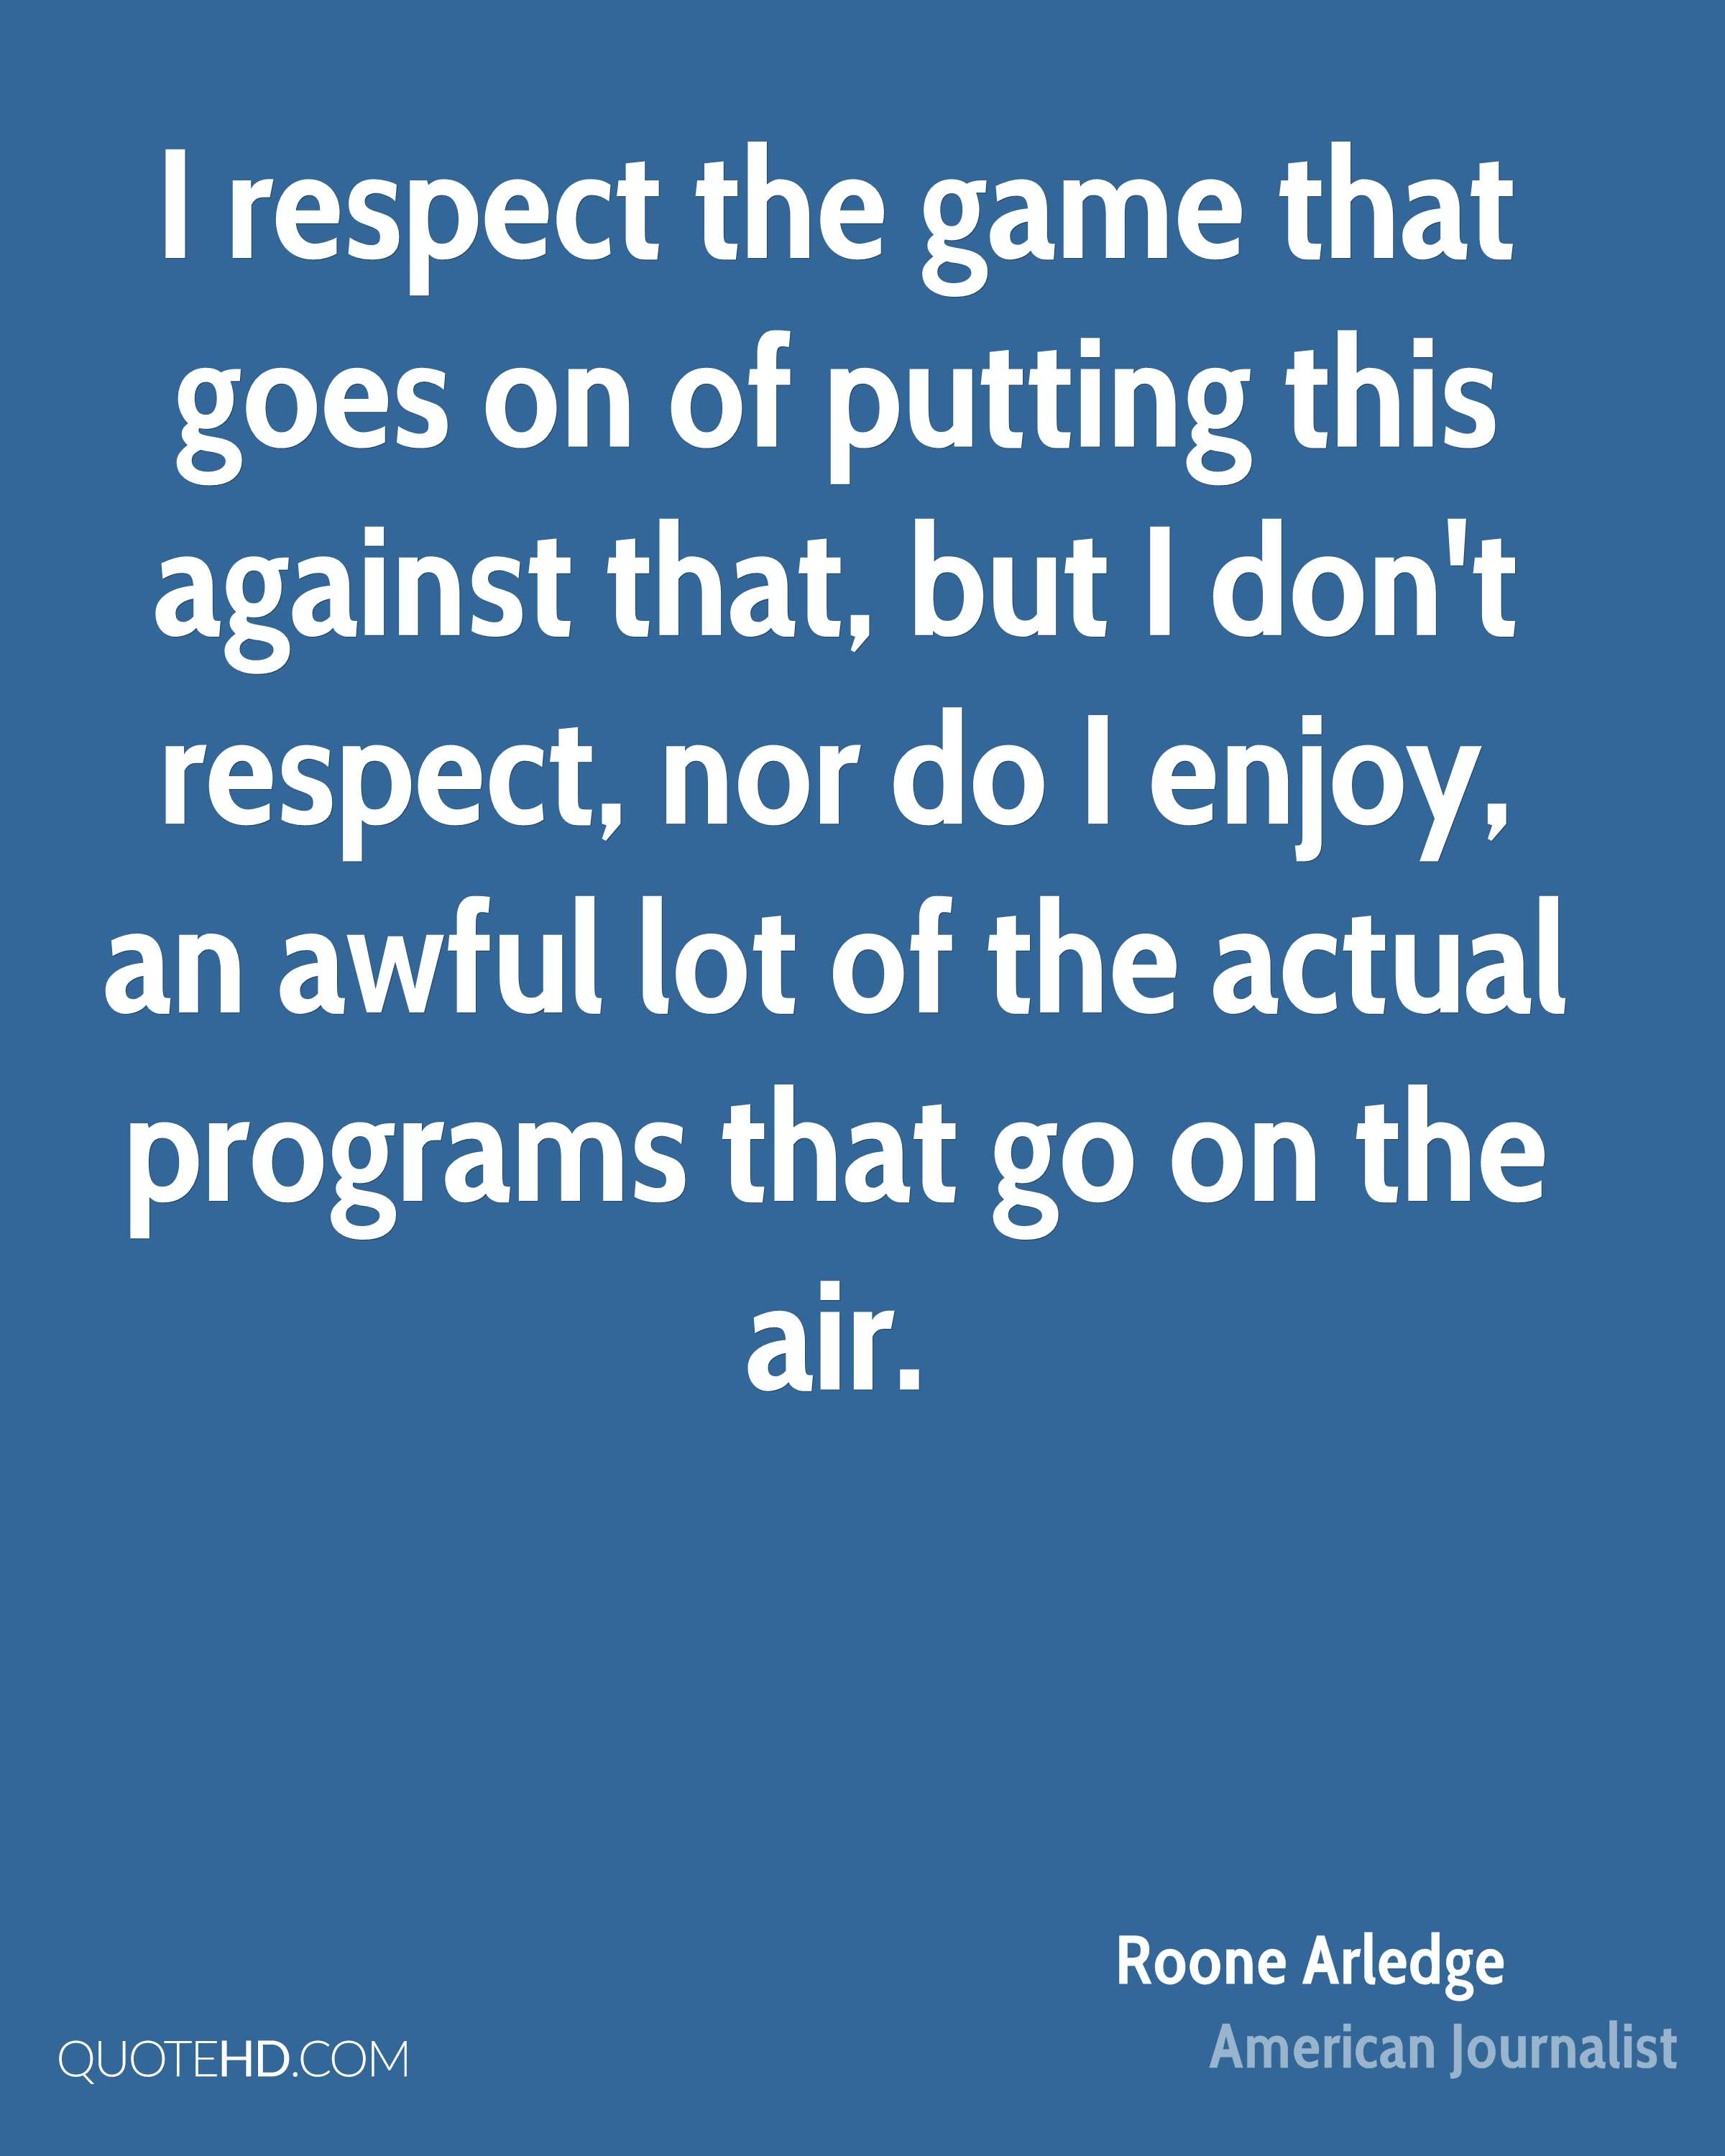 I respect the game that goes on of putting this against that, but I don't respect, nor do I enjoy, an awful lot of the actual programs that go on the air.